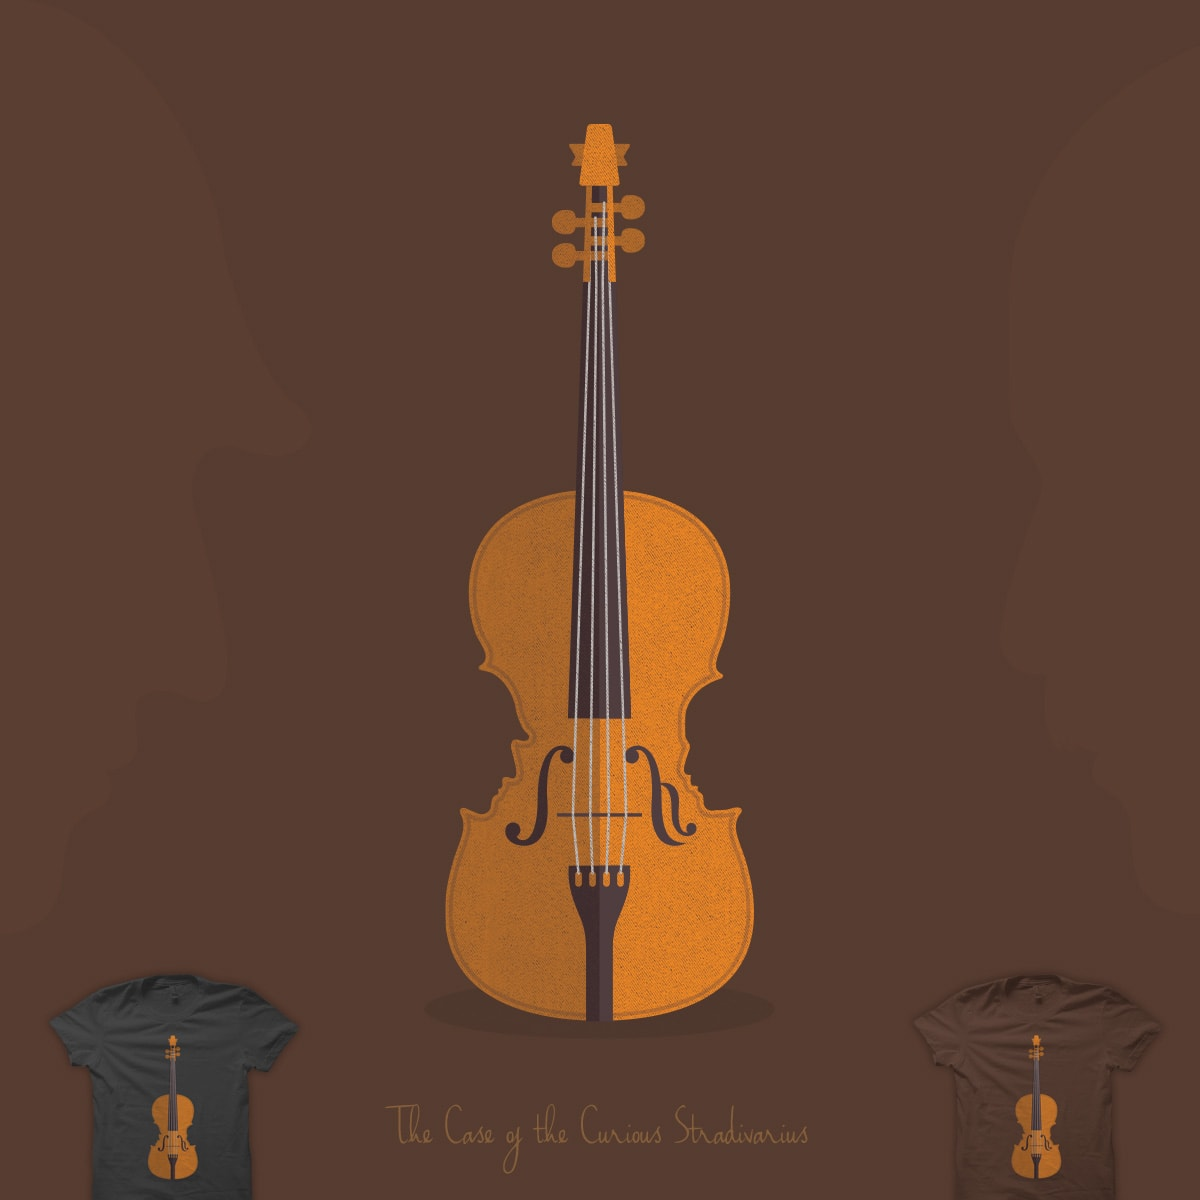 The Case of the Curious Stradivarius by quick-brown-fox on Threadless